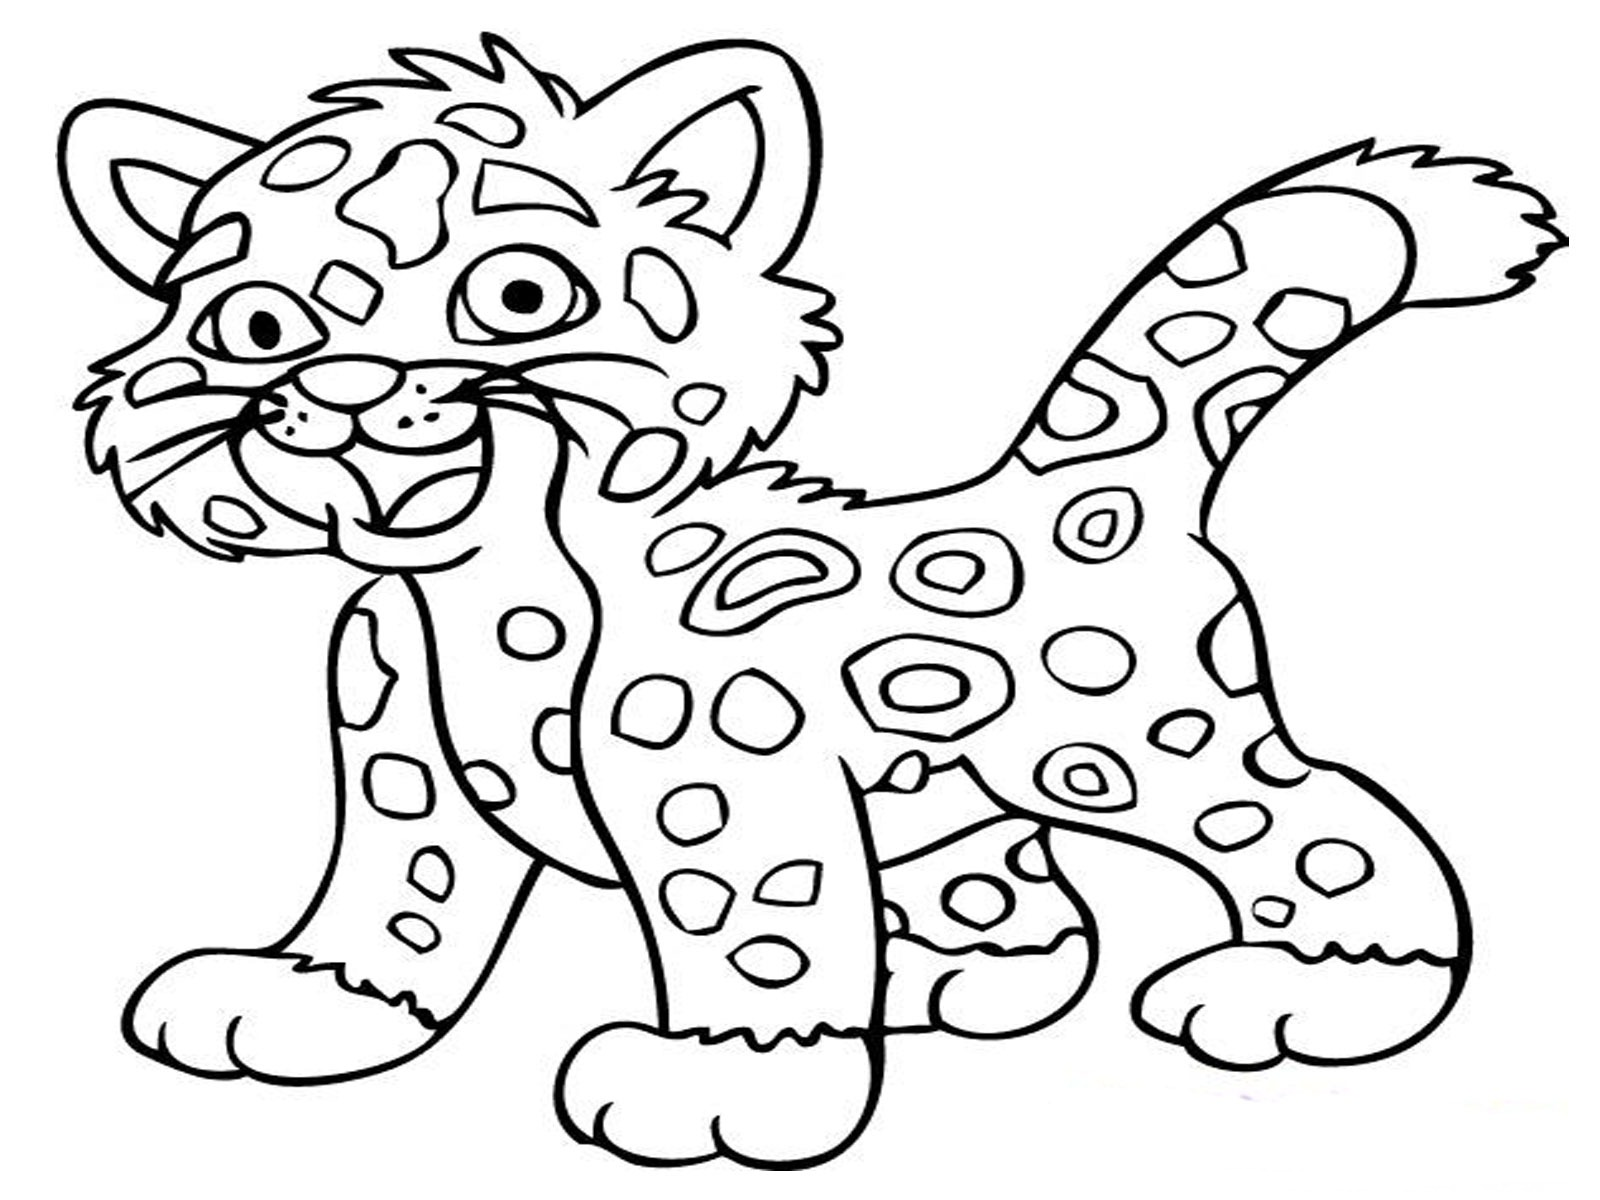 Animal coloring pages 9 coloring kids for Free animal coloring pages kids